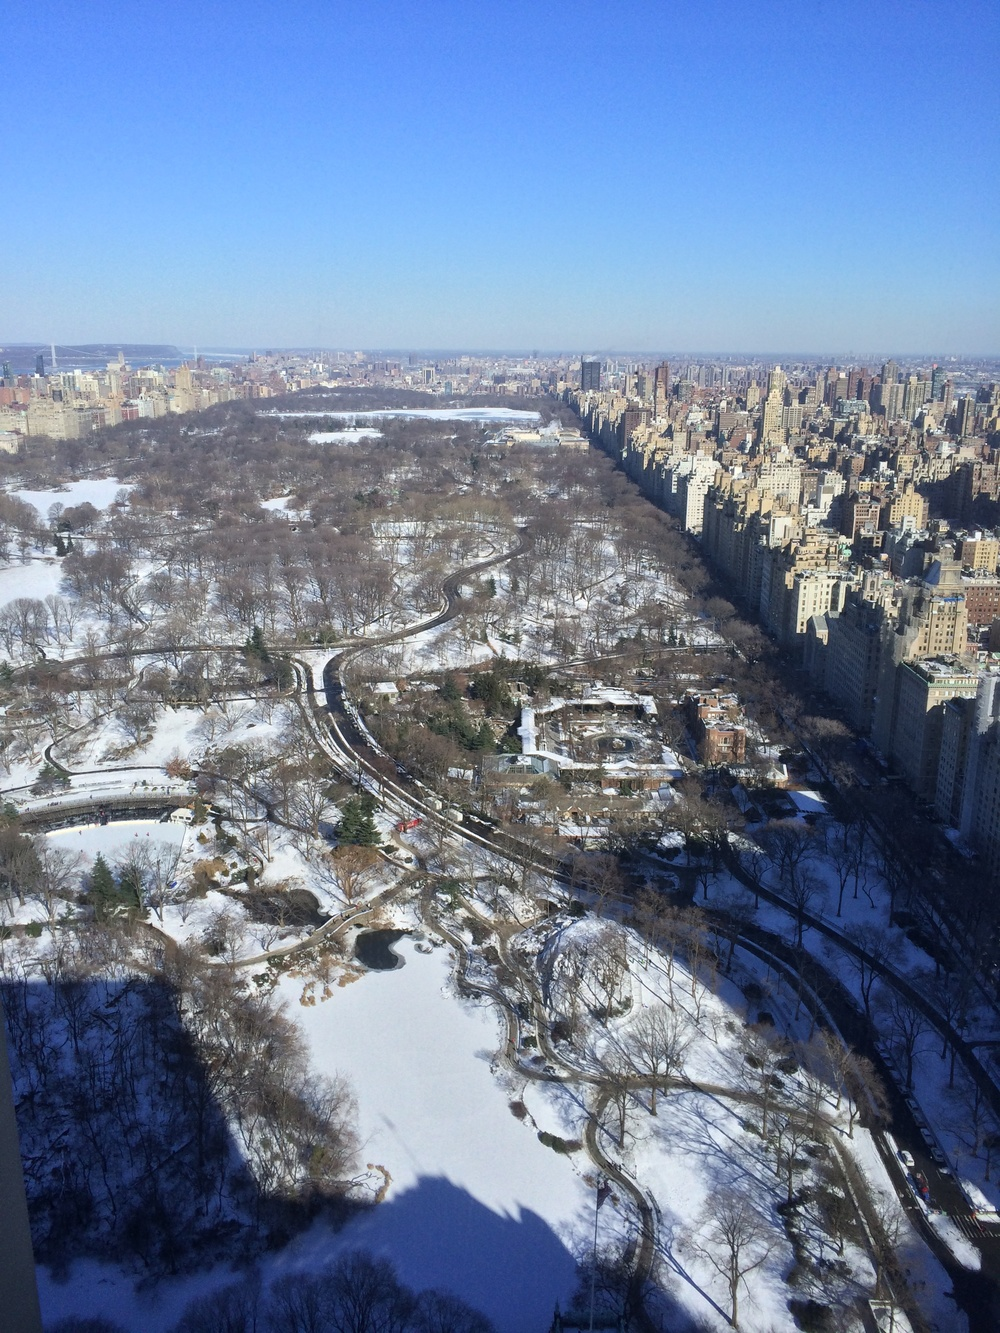 View from Chanel offices, Central Park in the snow - Photo by: Lauren L Caron